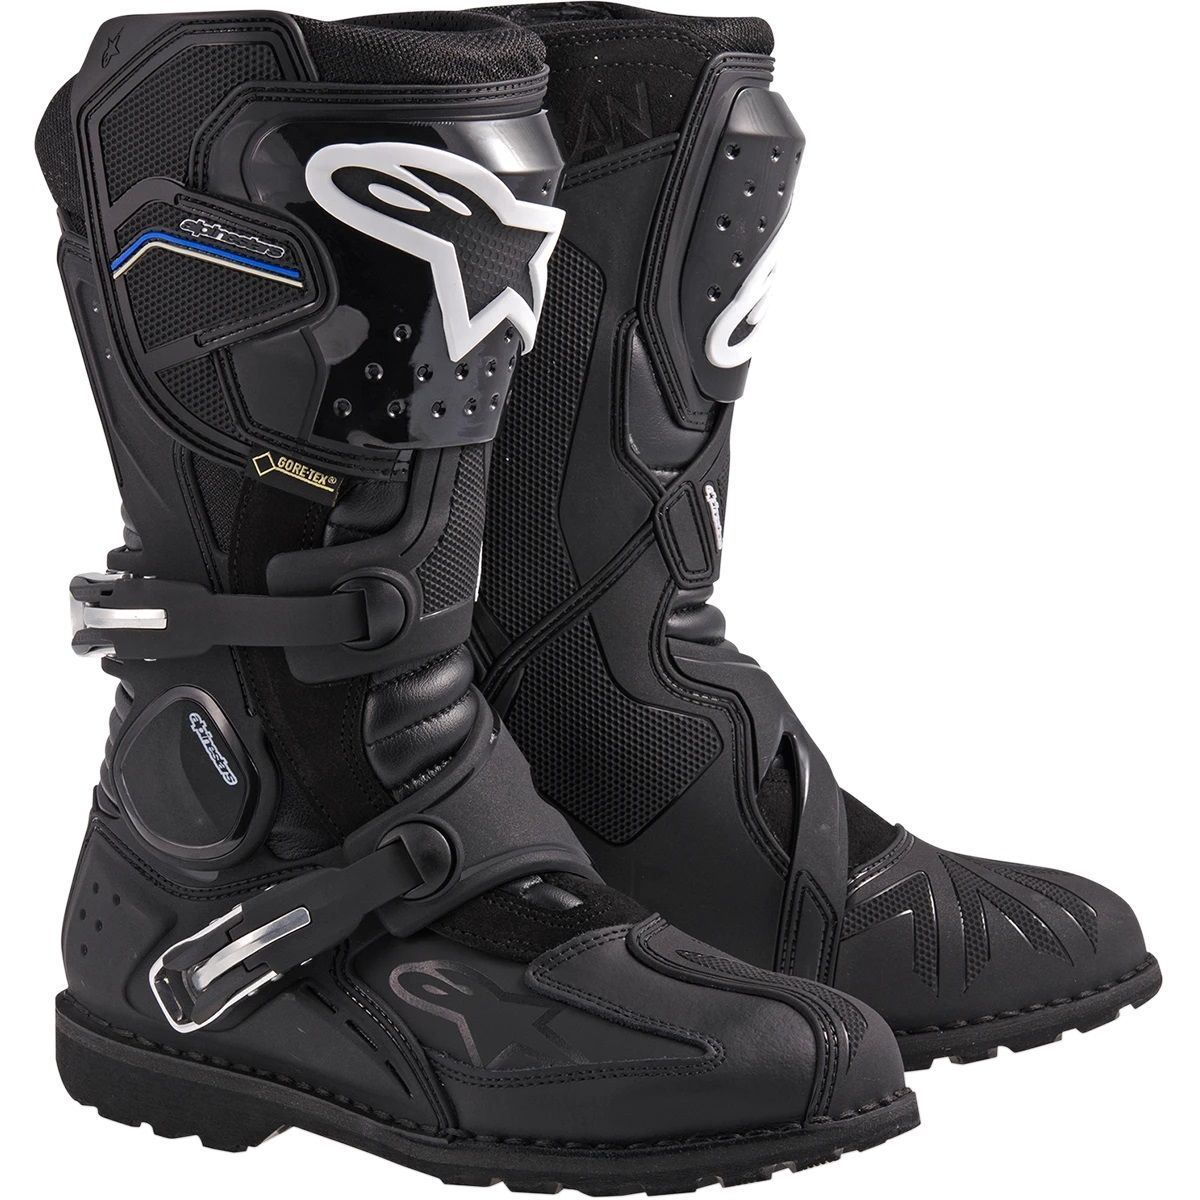 TOUCAN GORE-TEX BOOTS Black